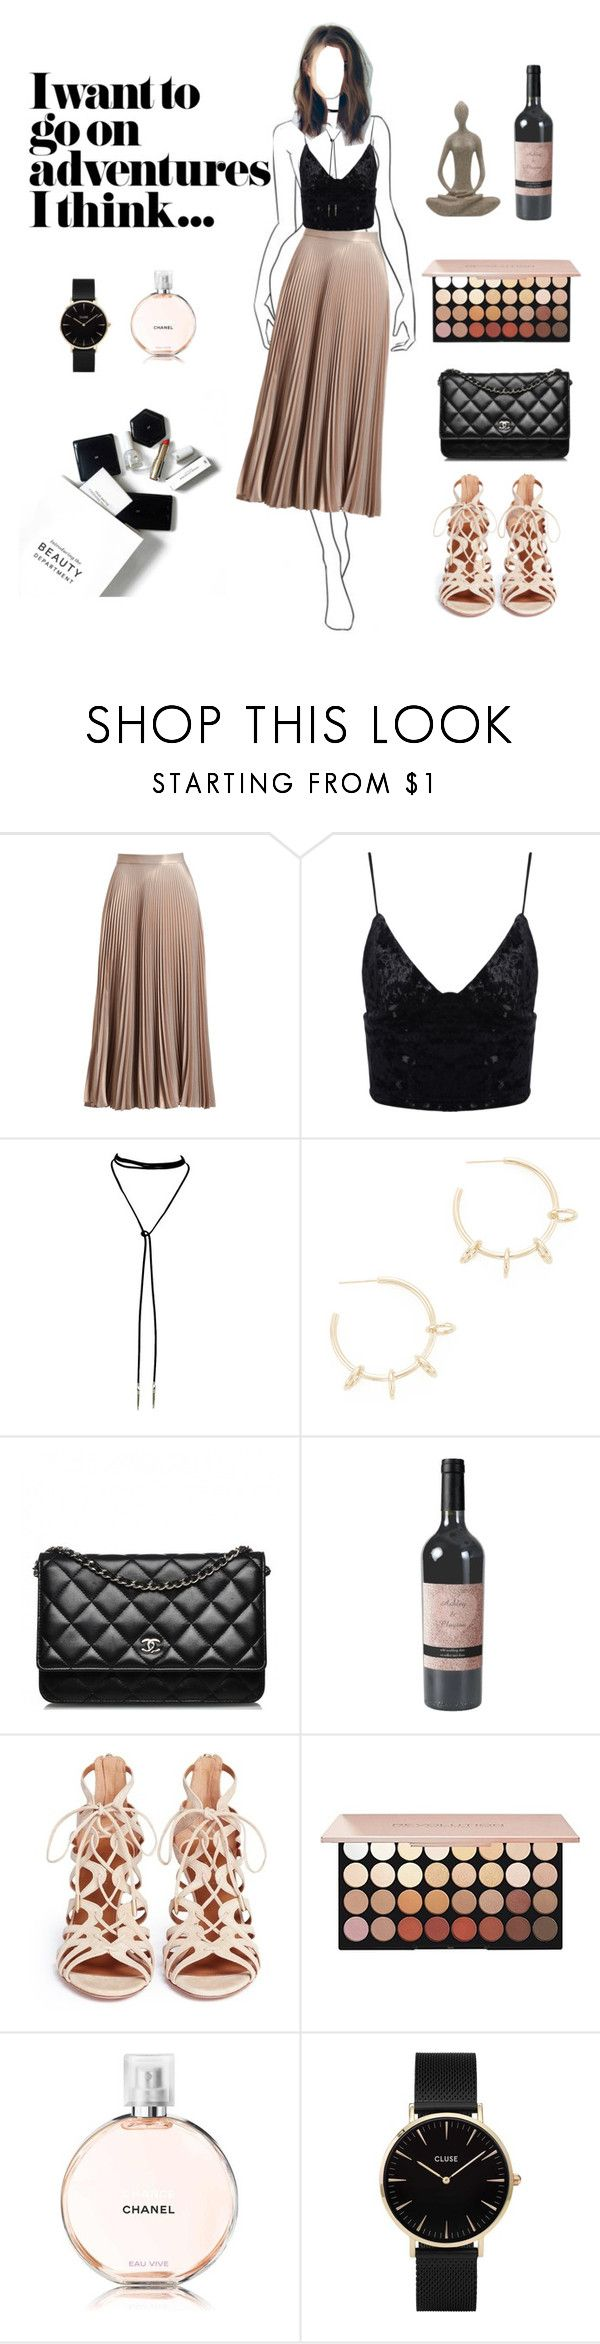 """adventure "" by andreeapetre4 on Polyvore featuring H&M, A.L.C., Justine Clenquet, Chanel, Aquazzura and CLUSE"